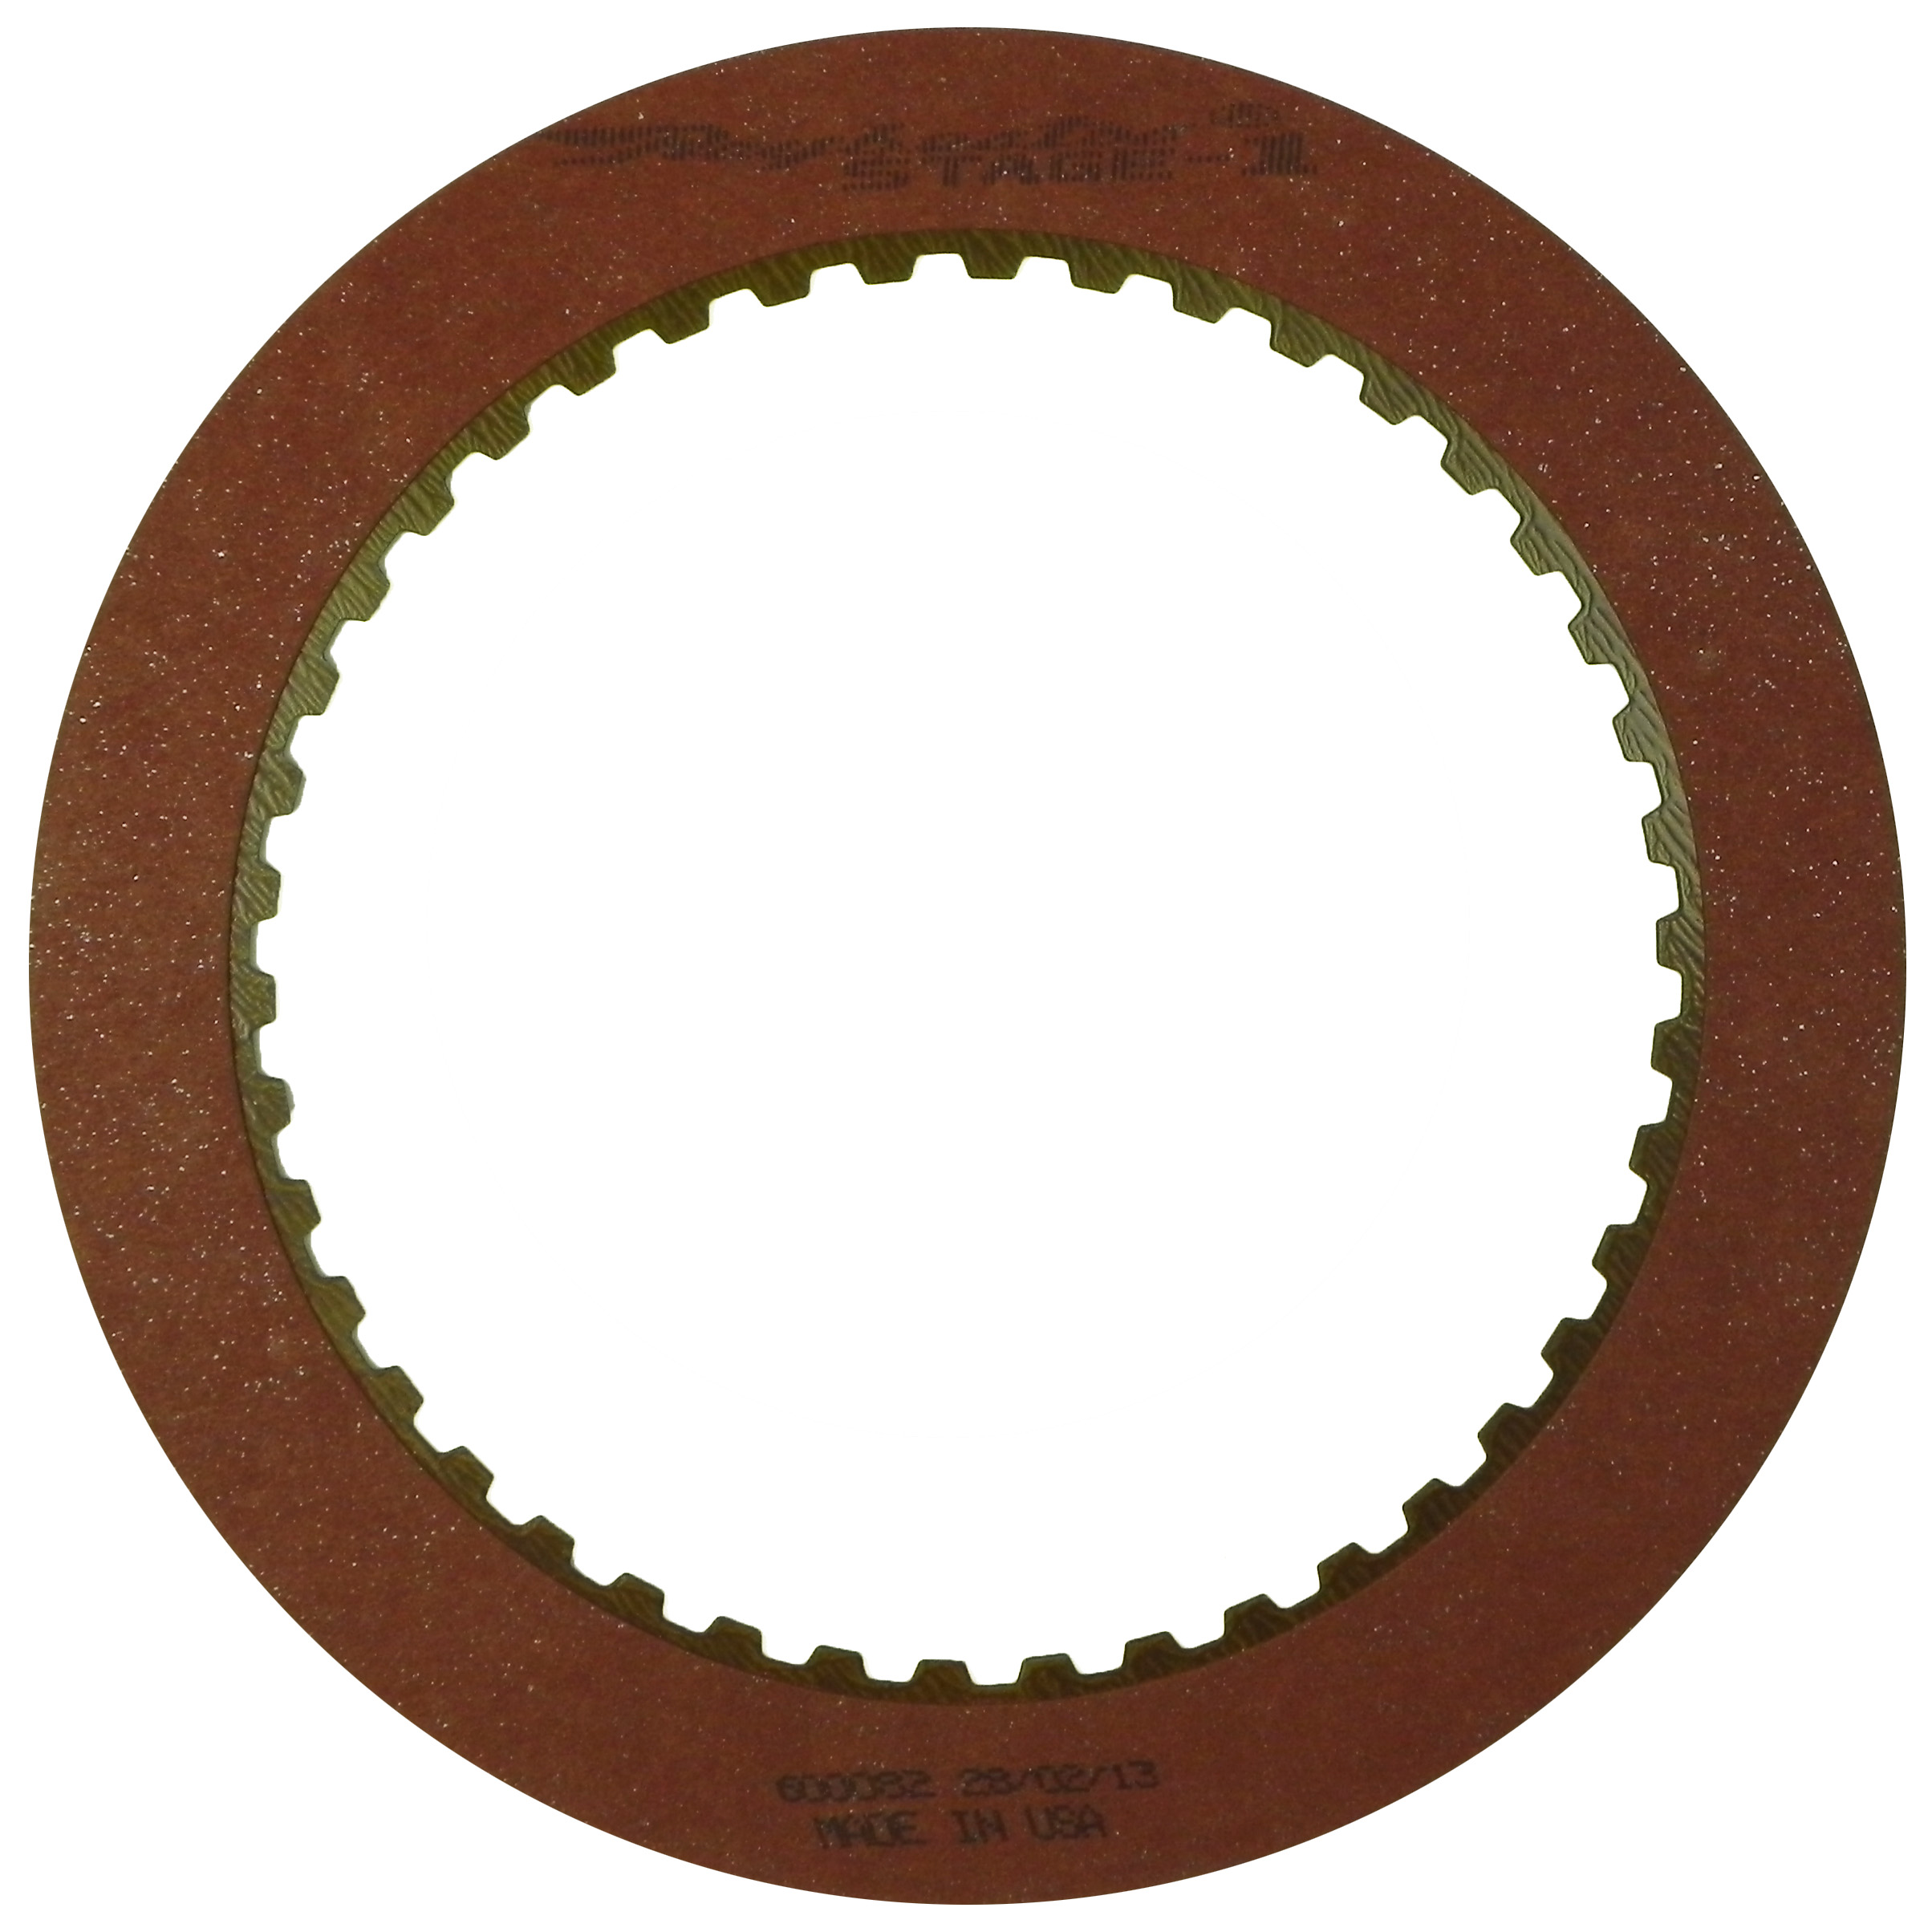 TH400, 3L80, TH400-R2, TH425, THMR2, 3L80HD, TH375, TH475, 4L80E, 4L85E Stage-1 Friction Clutch Plate